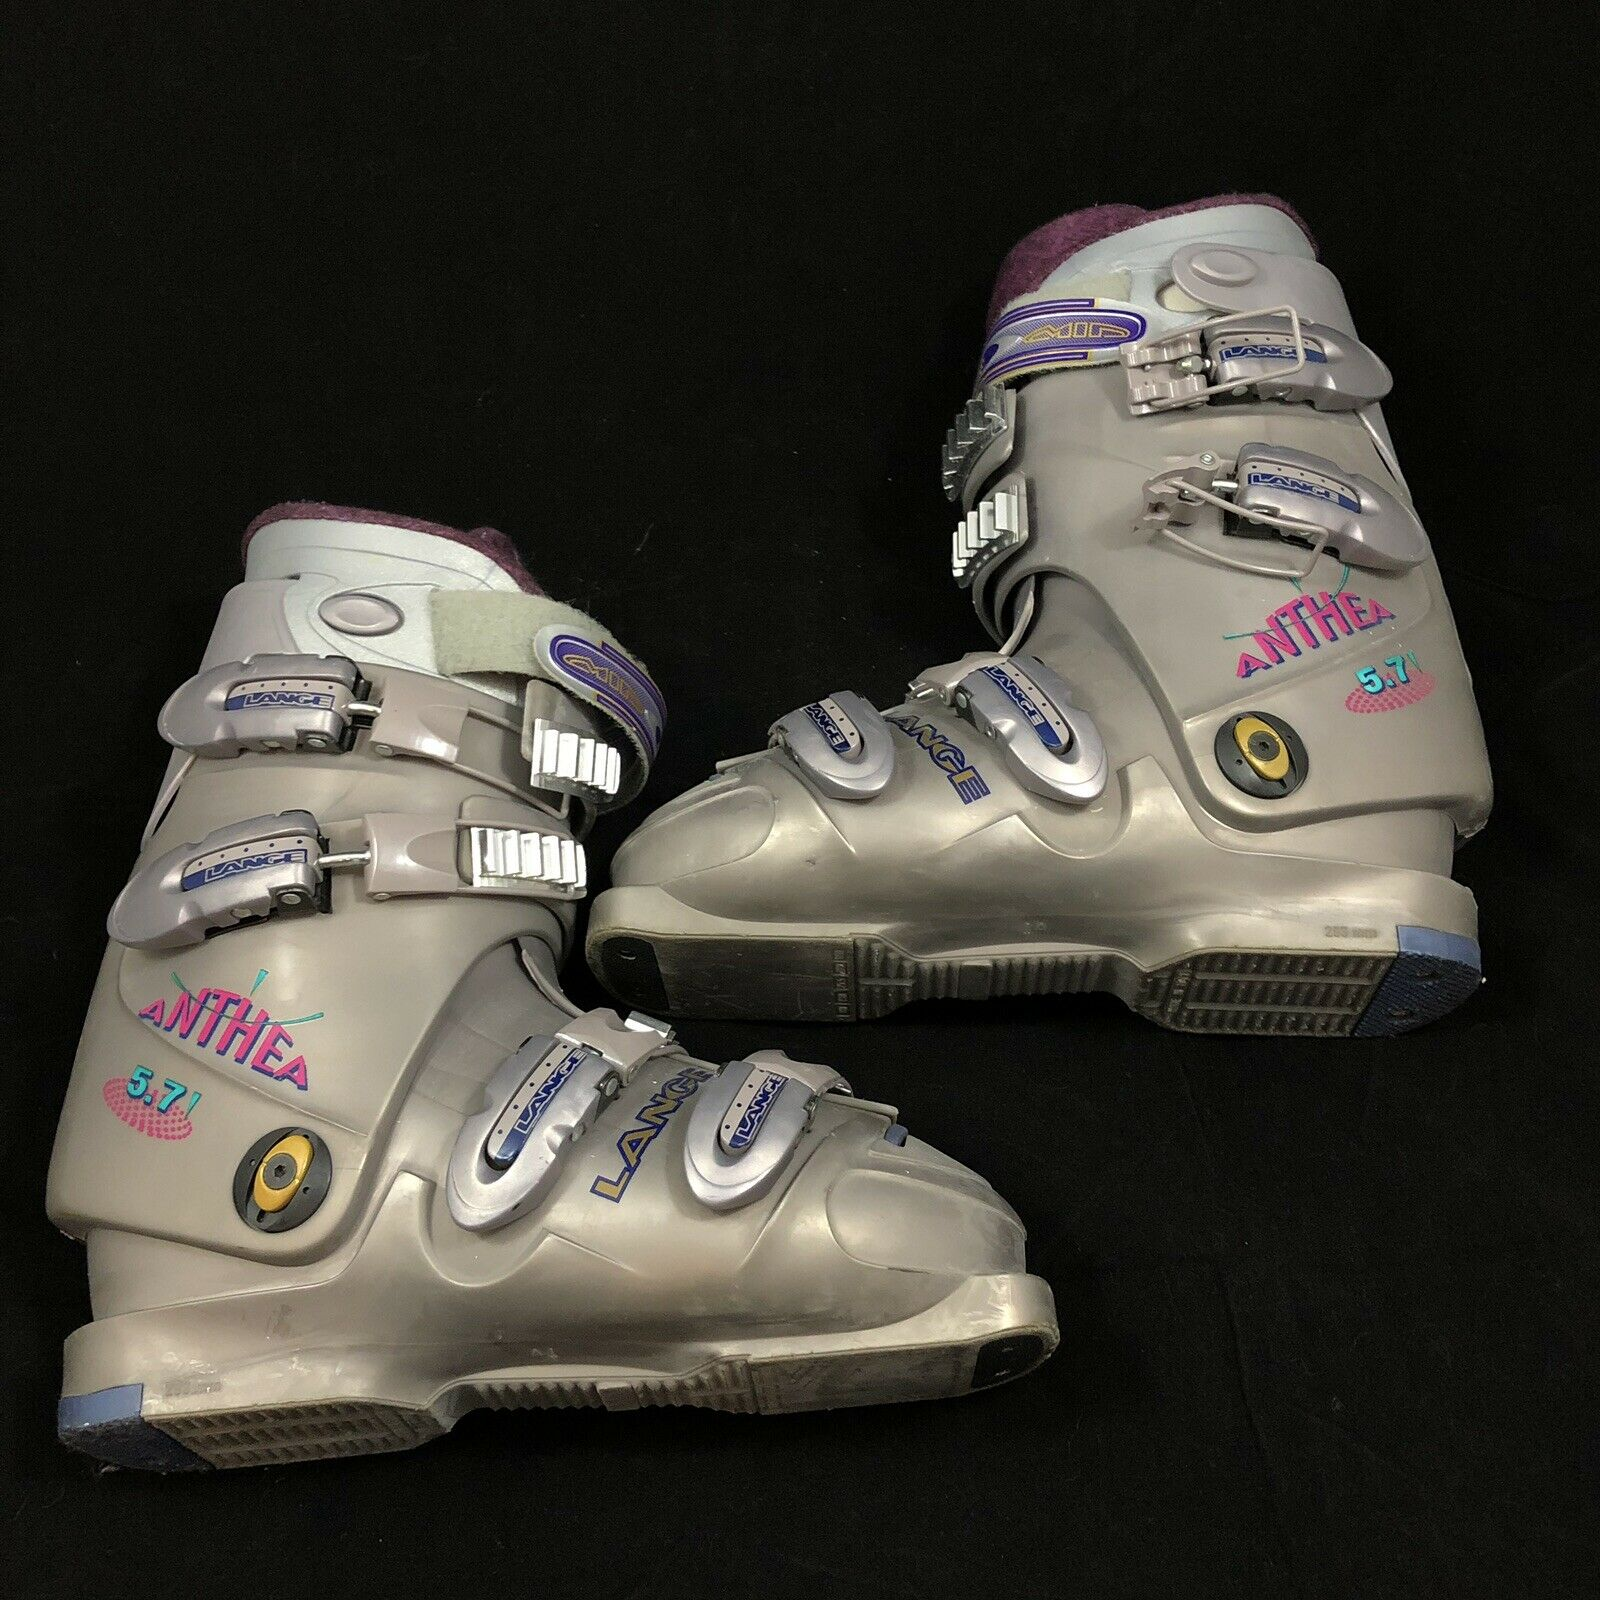 Lange Anthea 5.7 Kids  Ski Boots - Size 25.5 (8.5 US)  with cheap price to get top brand